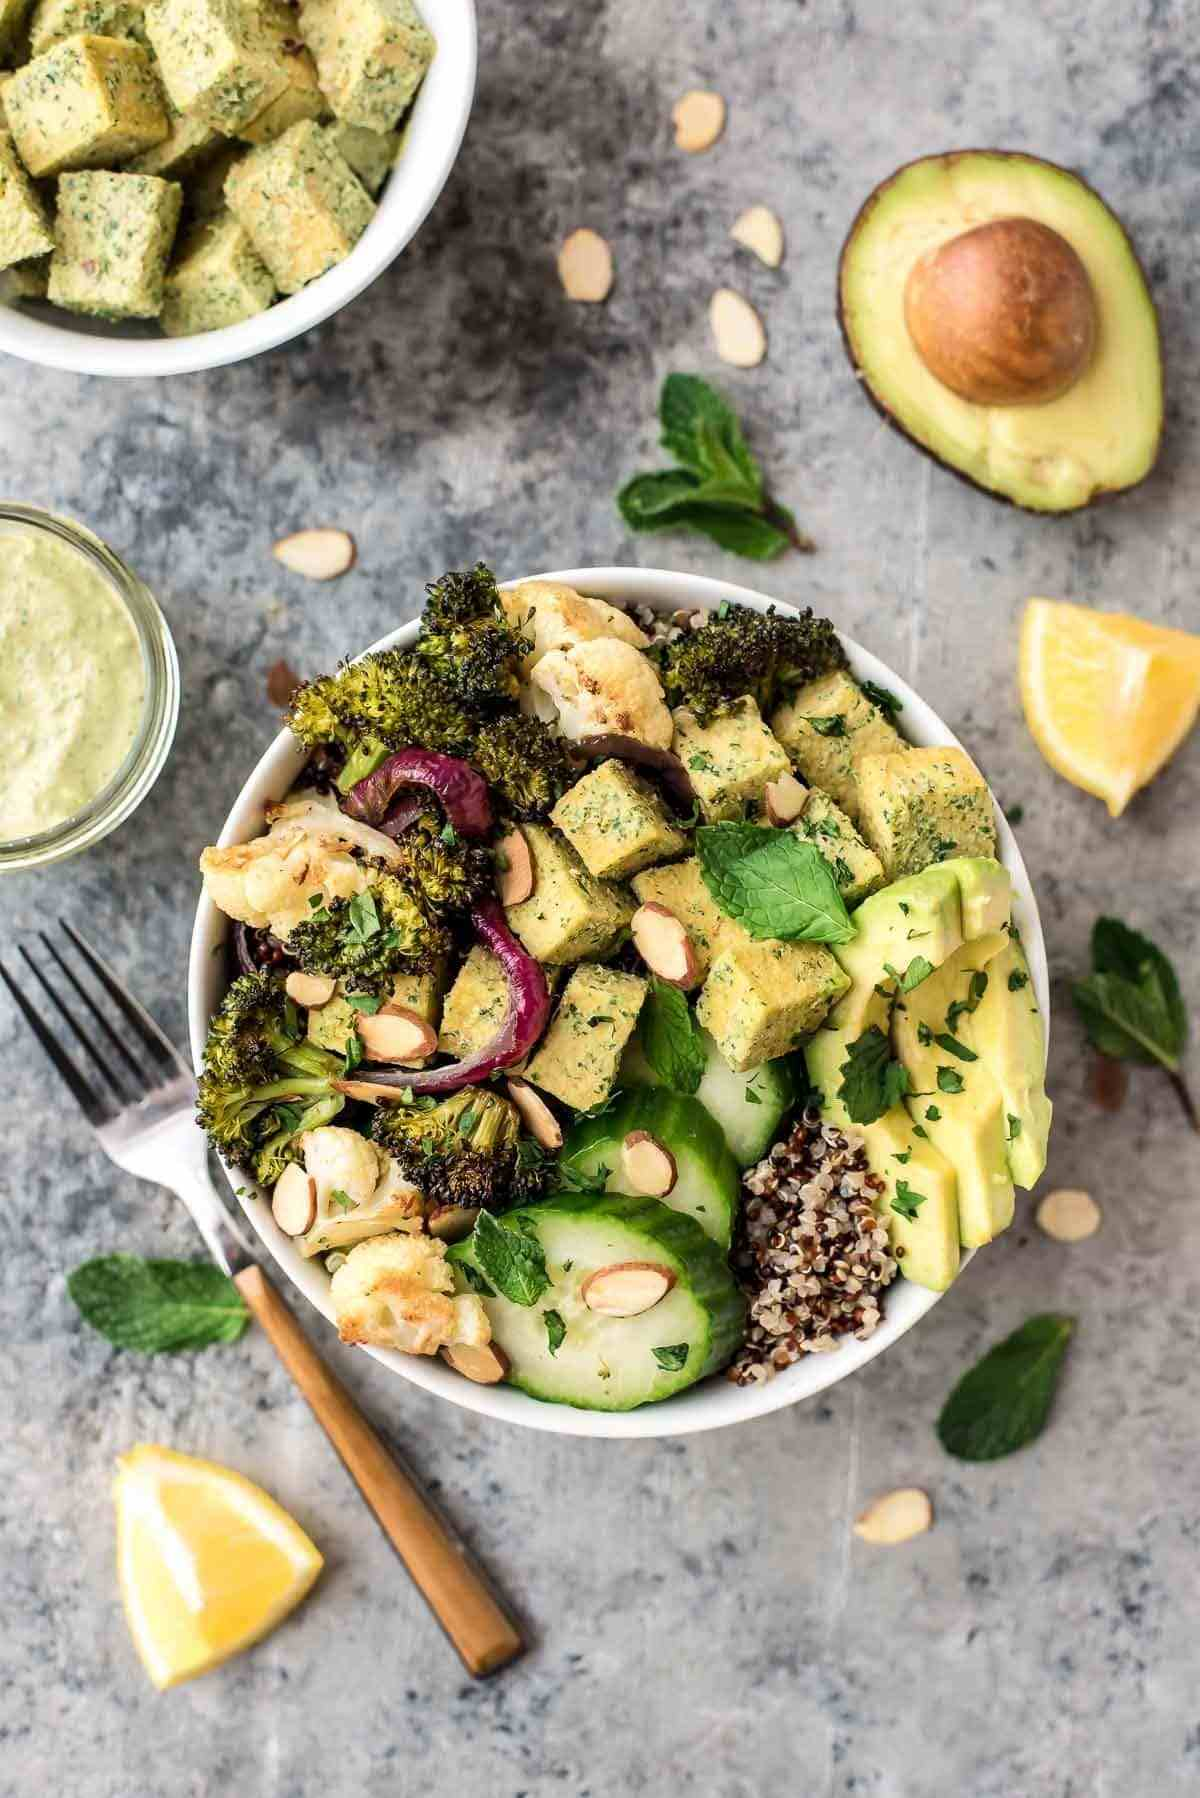 Roasted veggie bowl with quinoa, avocado